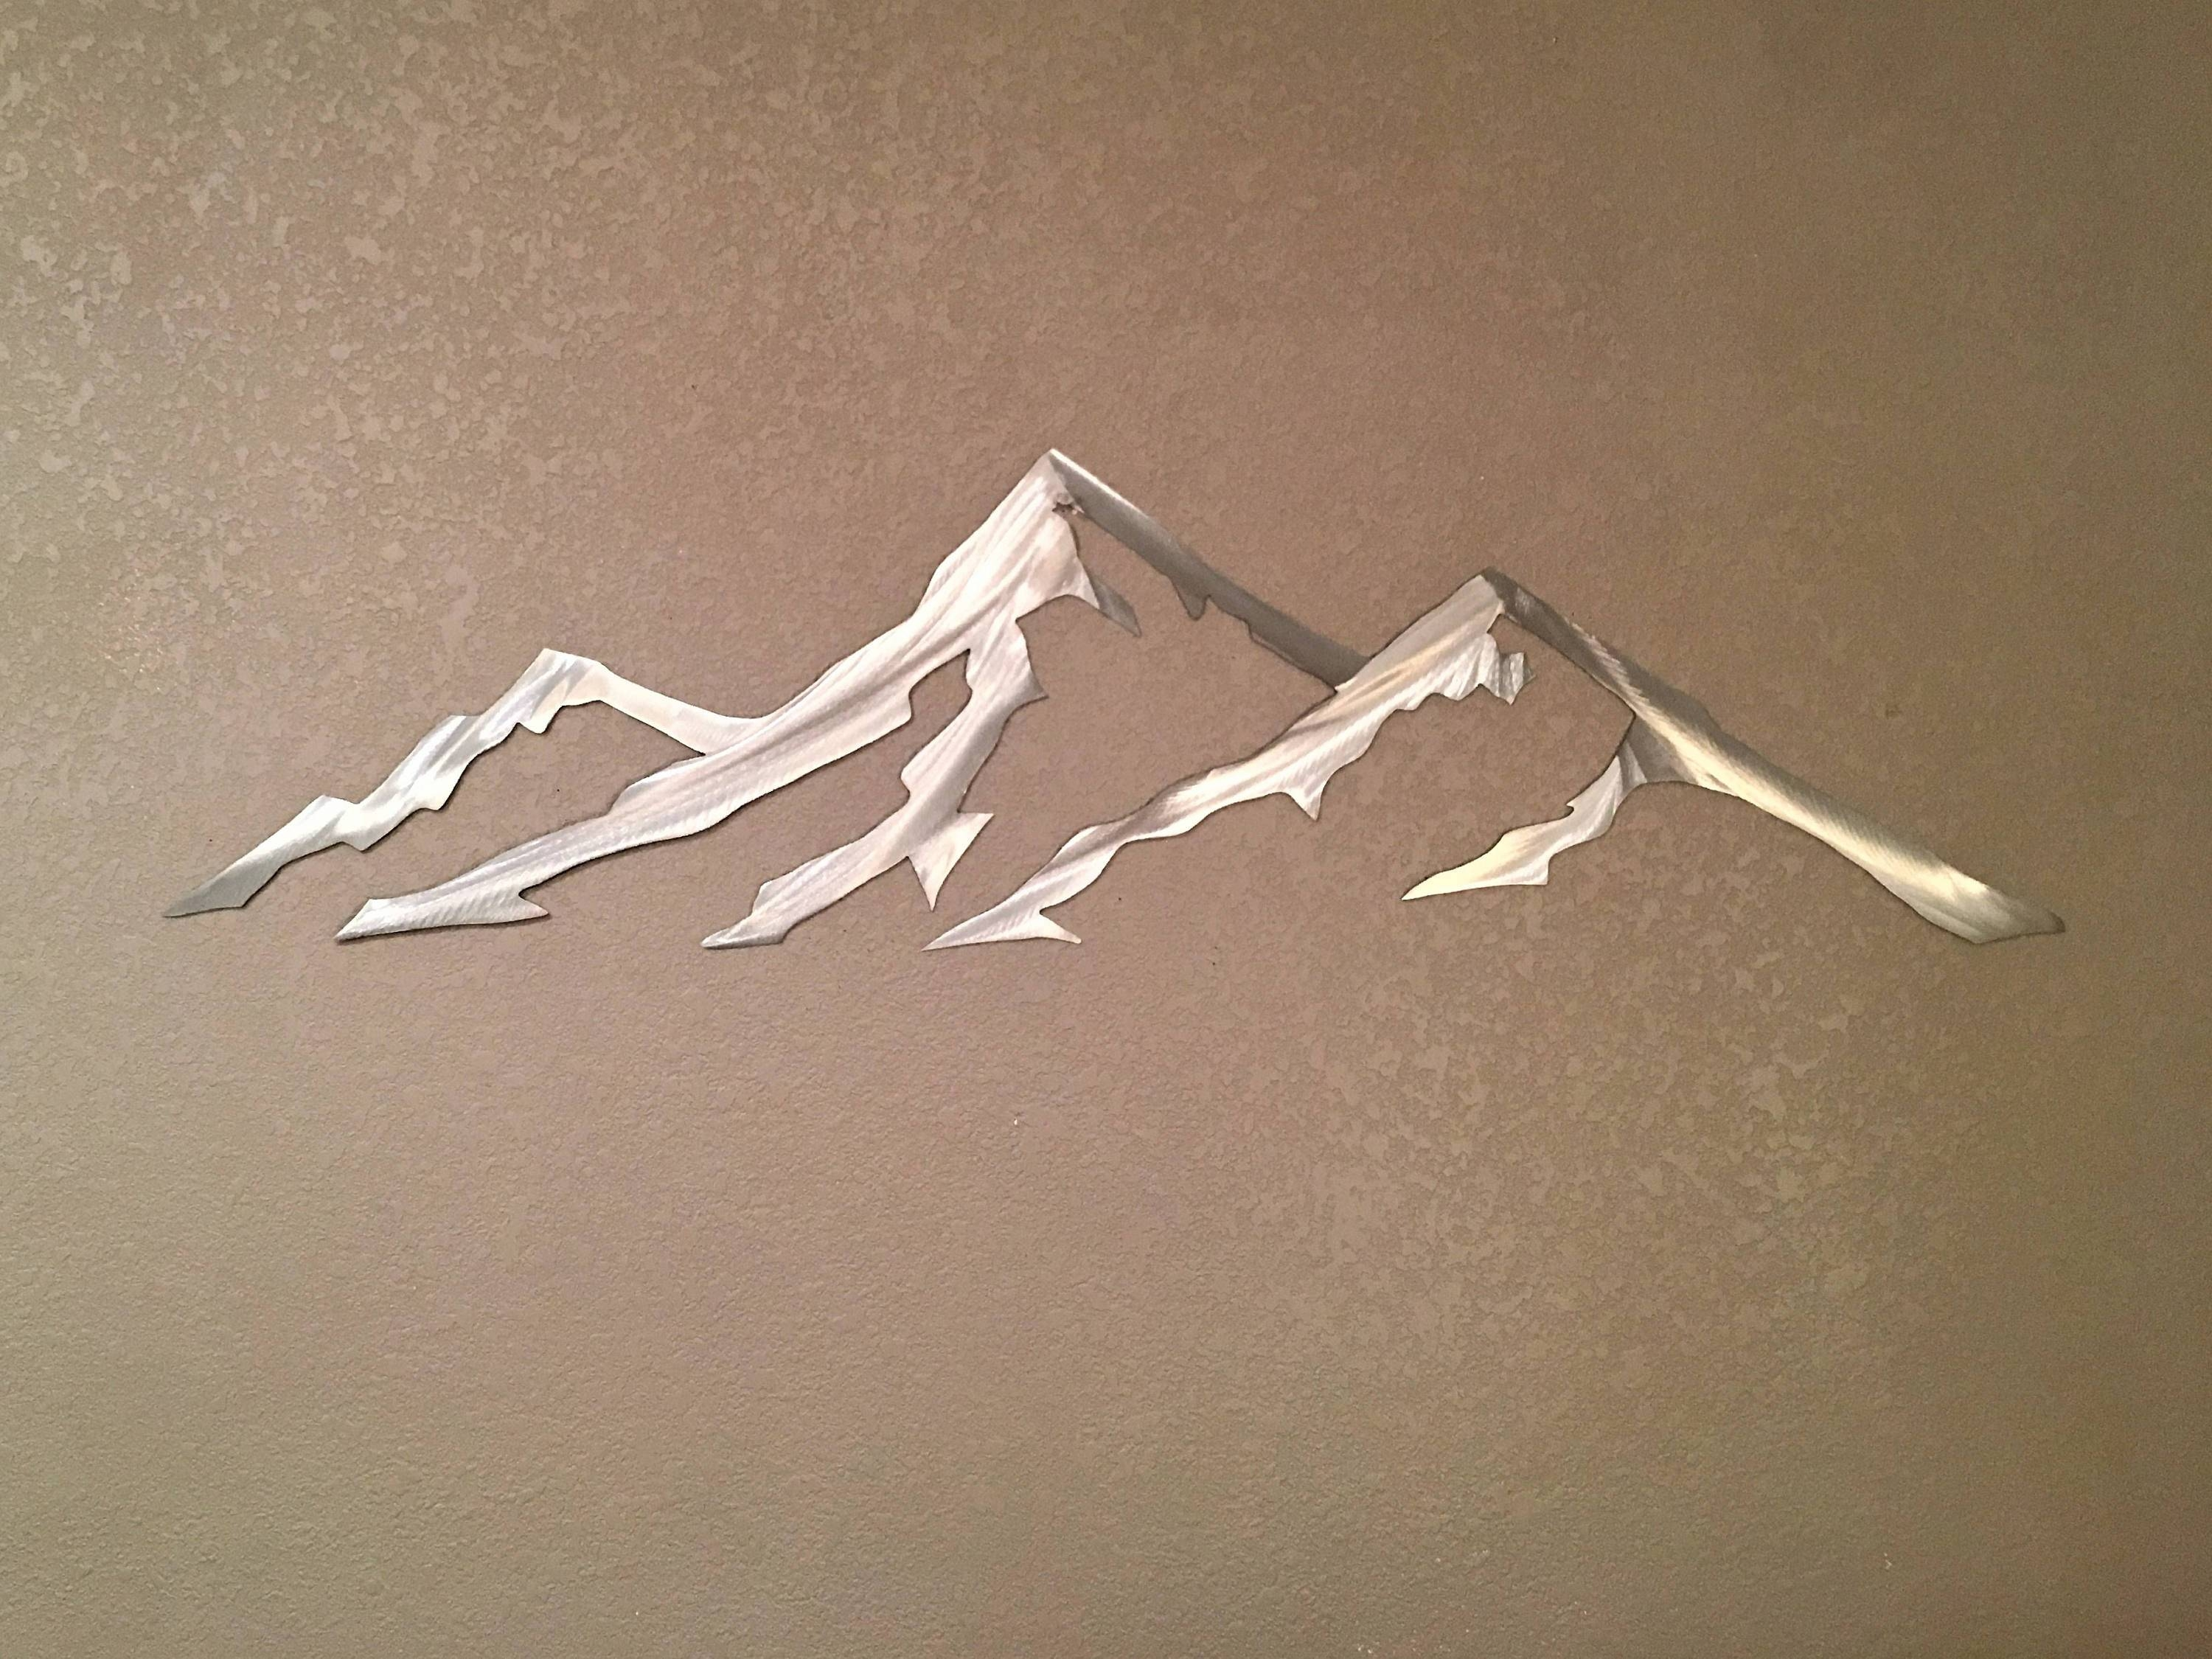 Quandary Peak 14,271 Feet. Colorado 14Er. Metal Wall Art (View 13 of 20)